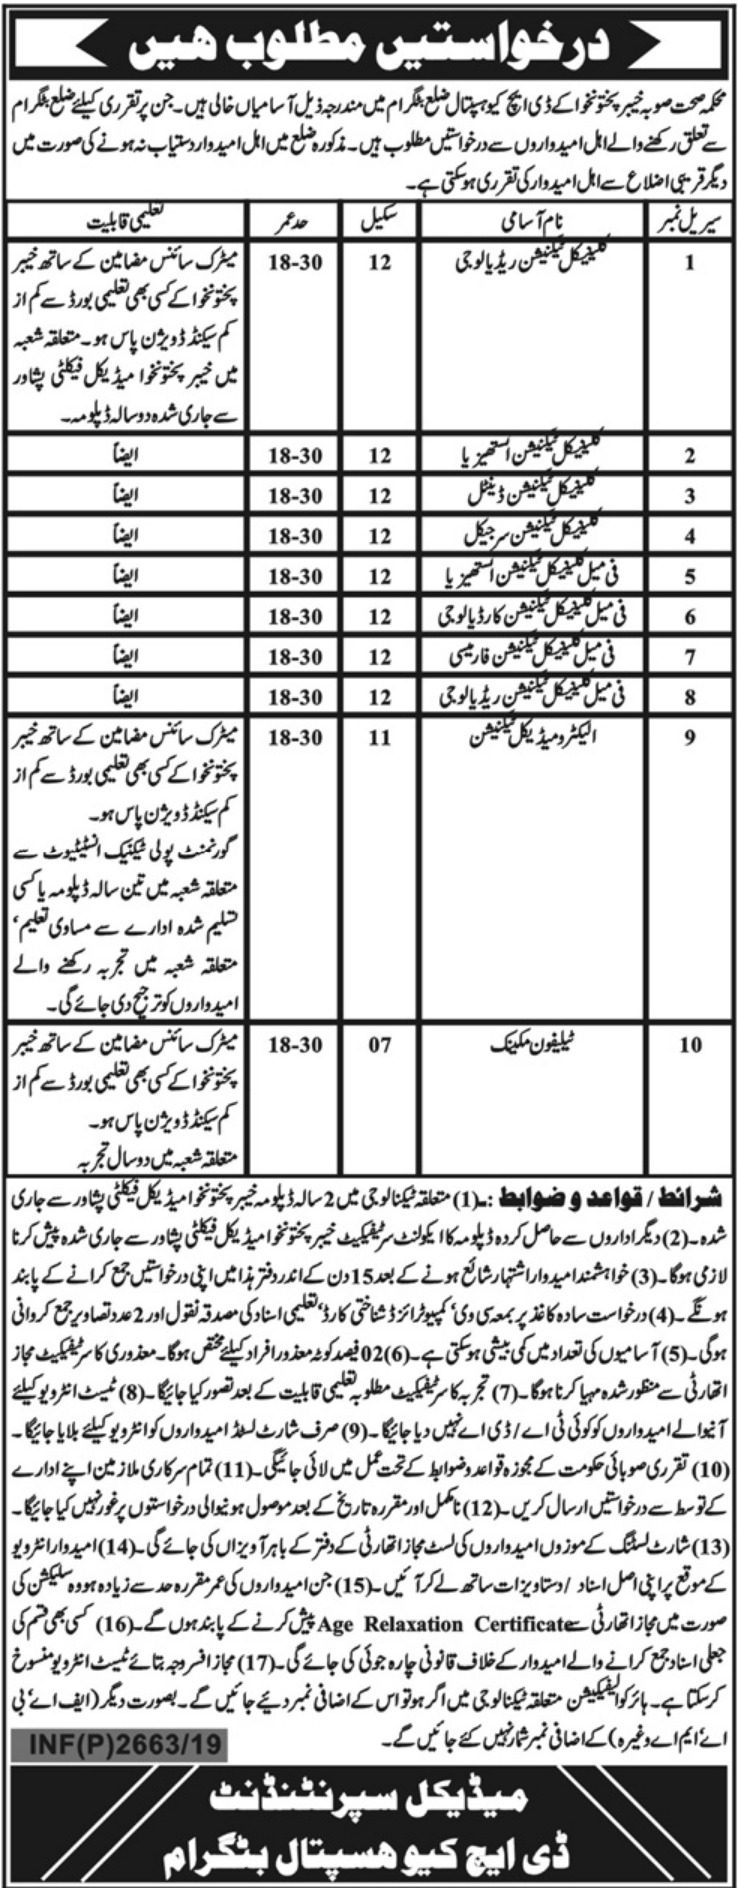 DHQ Hospital Battagram Jobs 2019 Khyber Pakhtunkhwa Health Department